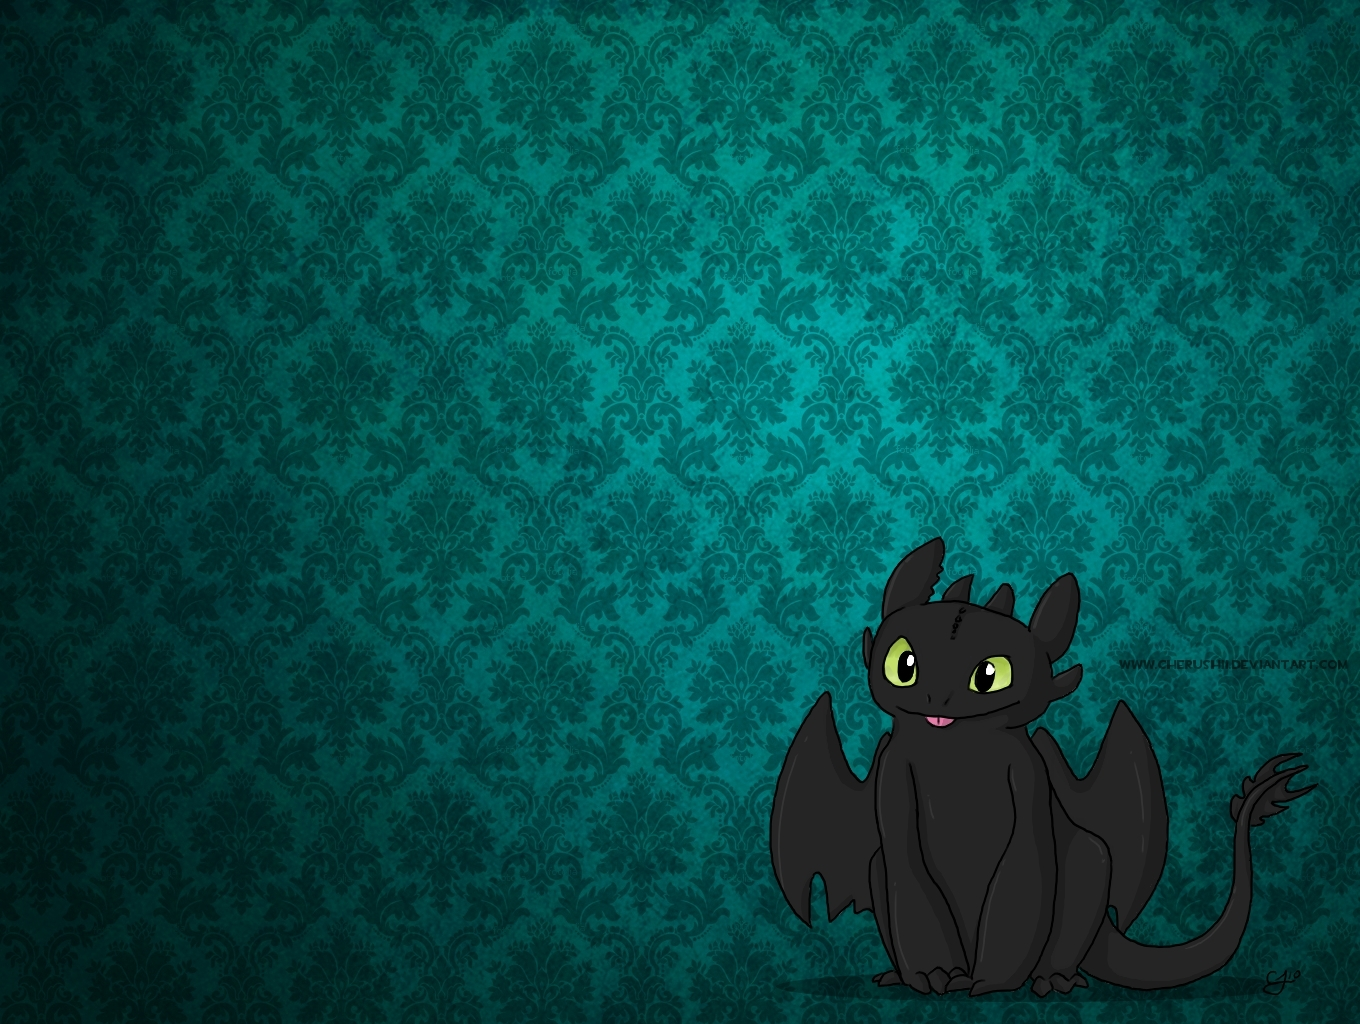 Download Wallpapers, Download 1360x1024 black dragons deviantart toothless how to train your dragon 1360x1024 wallpaper Wallpaper –Free Wallpapers Download